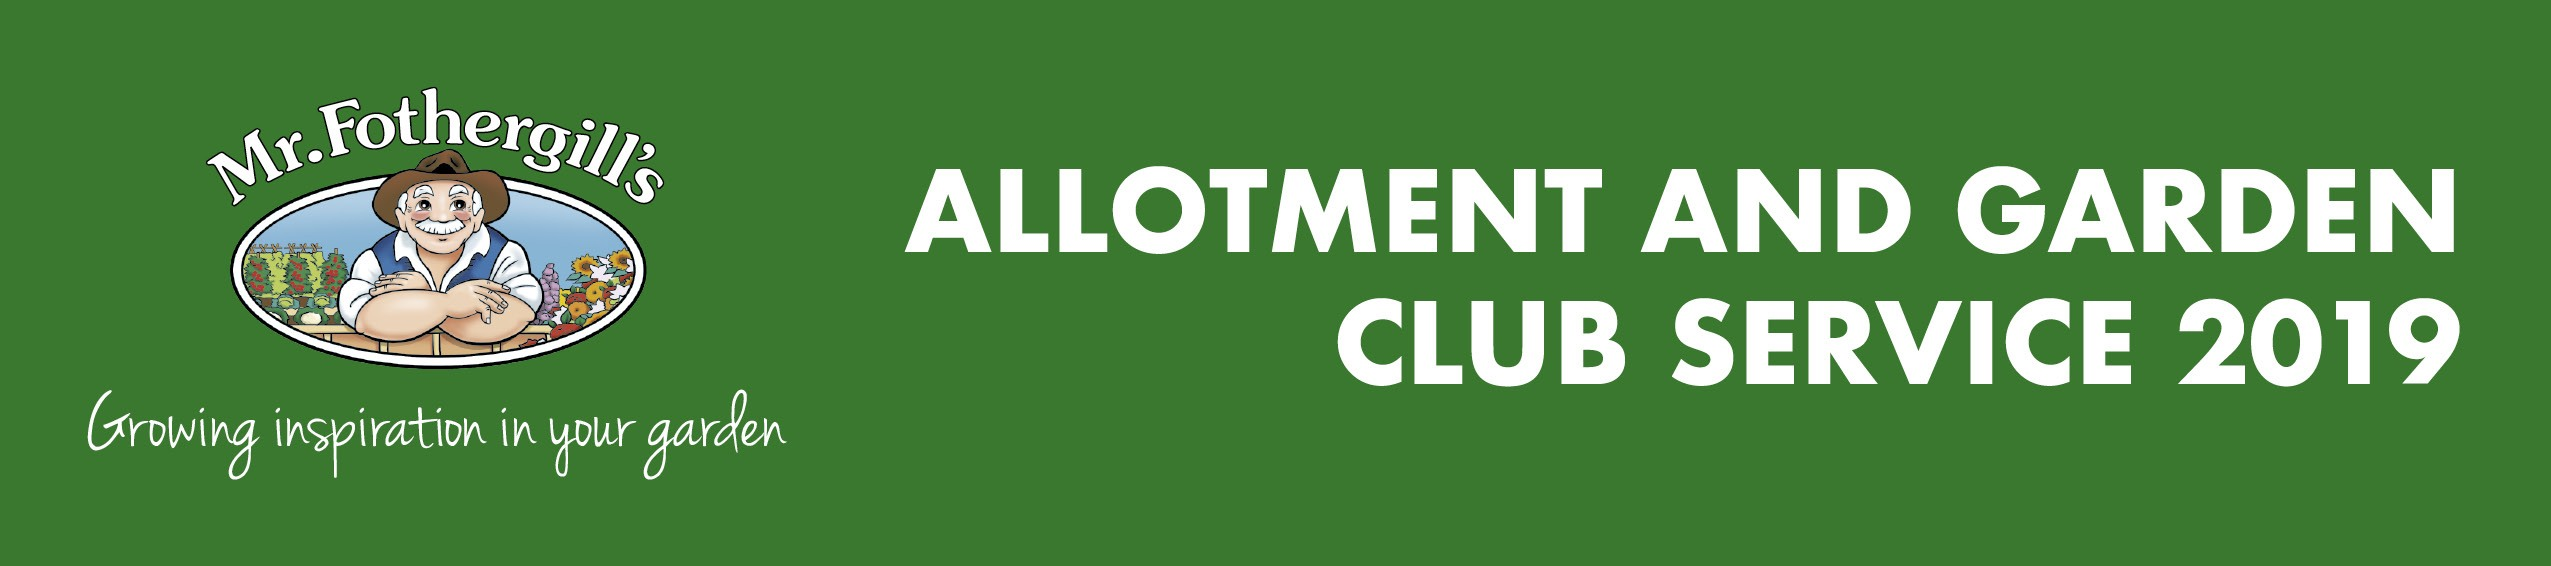 Mr Fothergill's Allotment & Gardening Club Service 2019